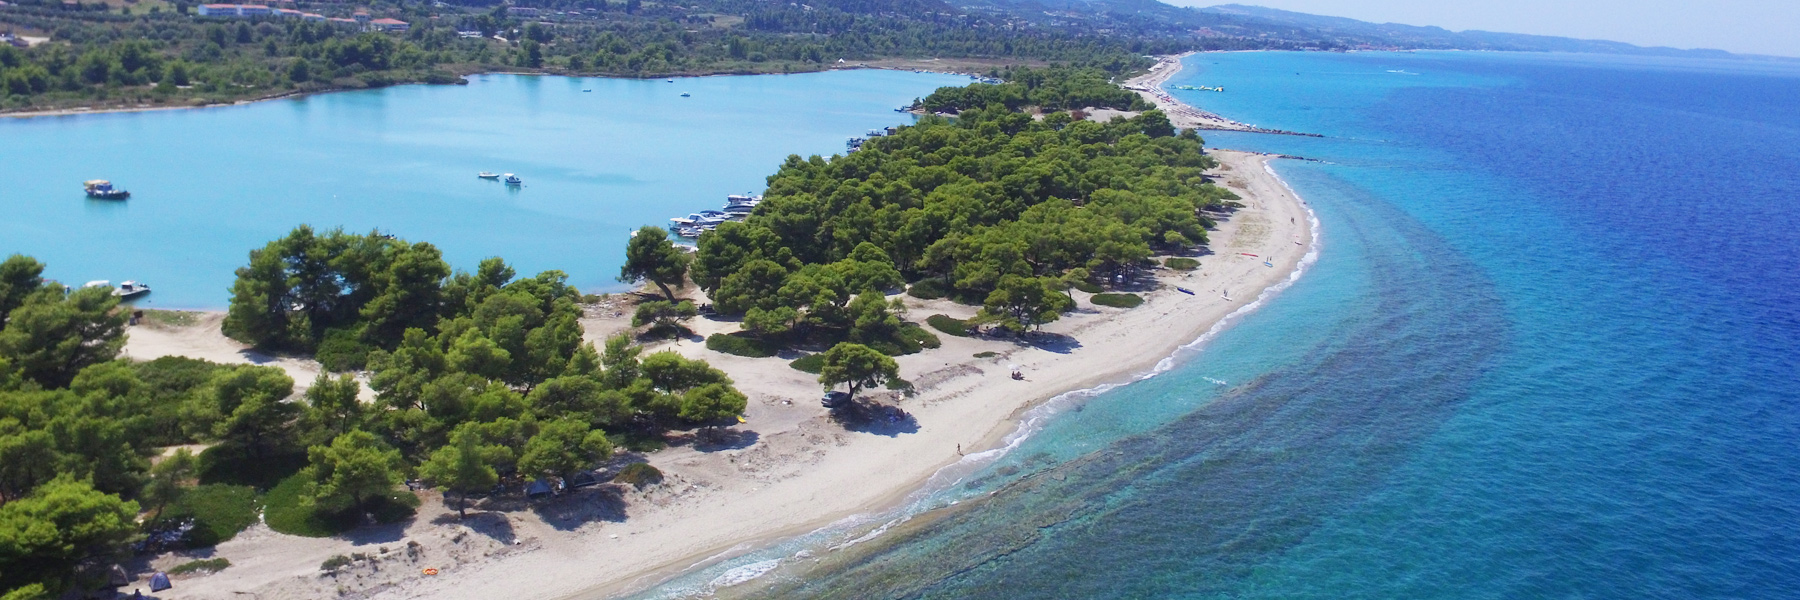 Amazing spots of Halkidiki